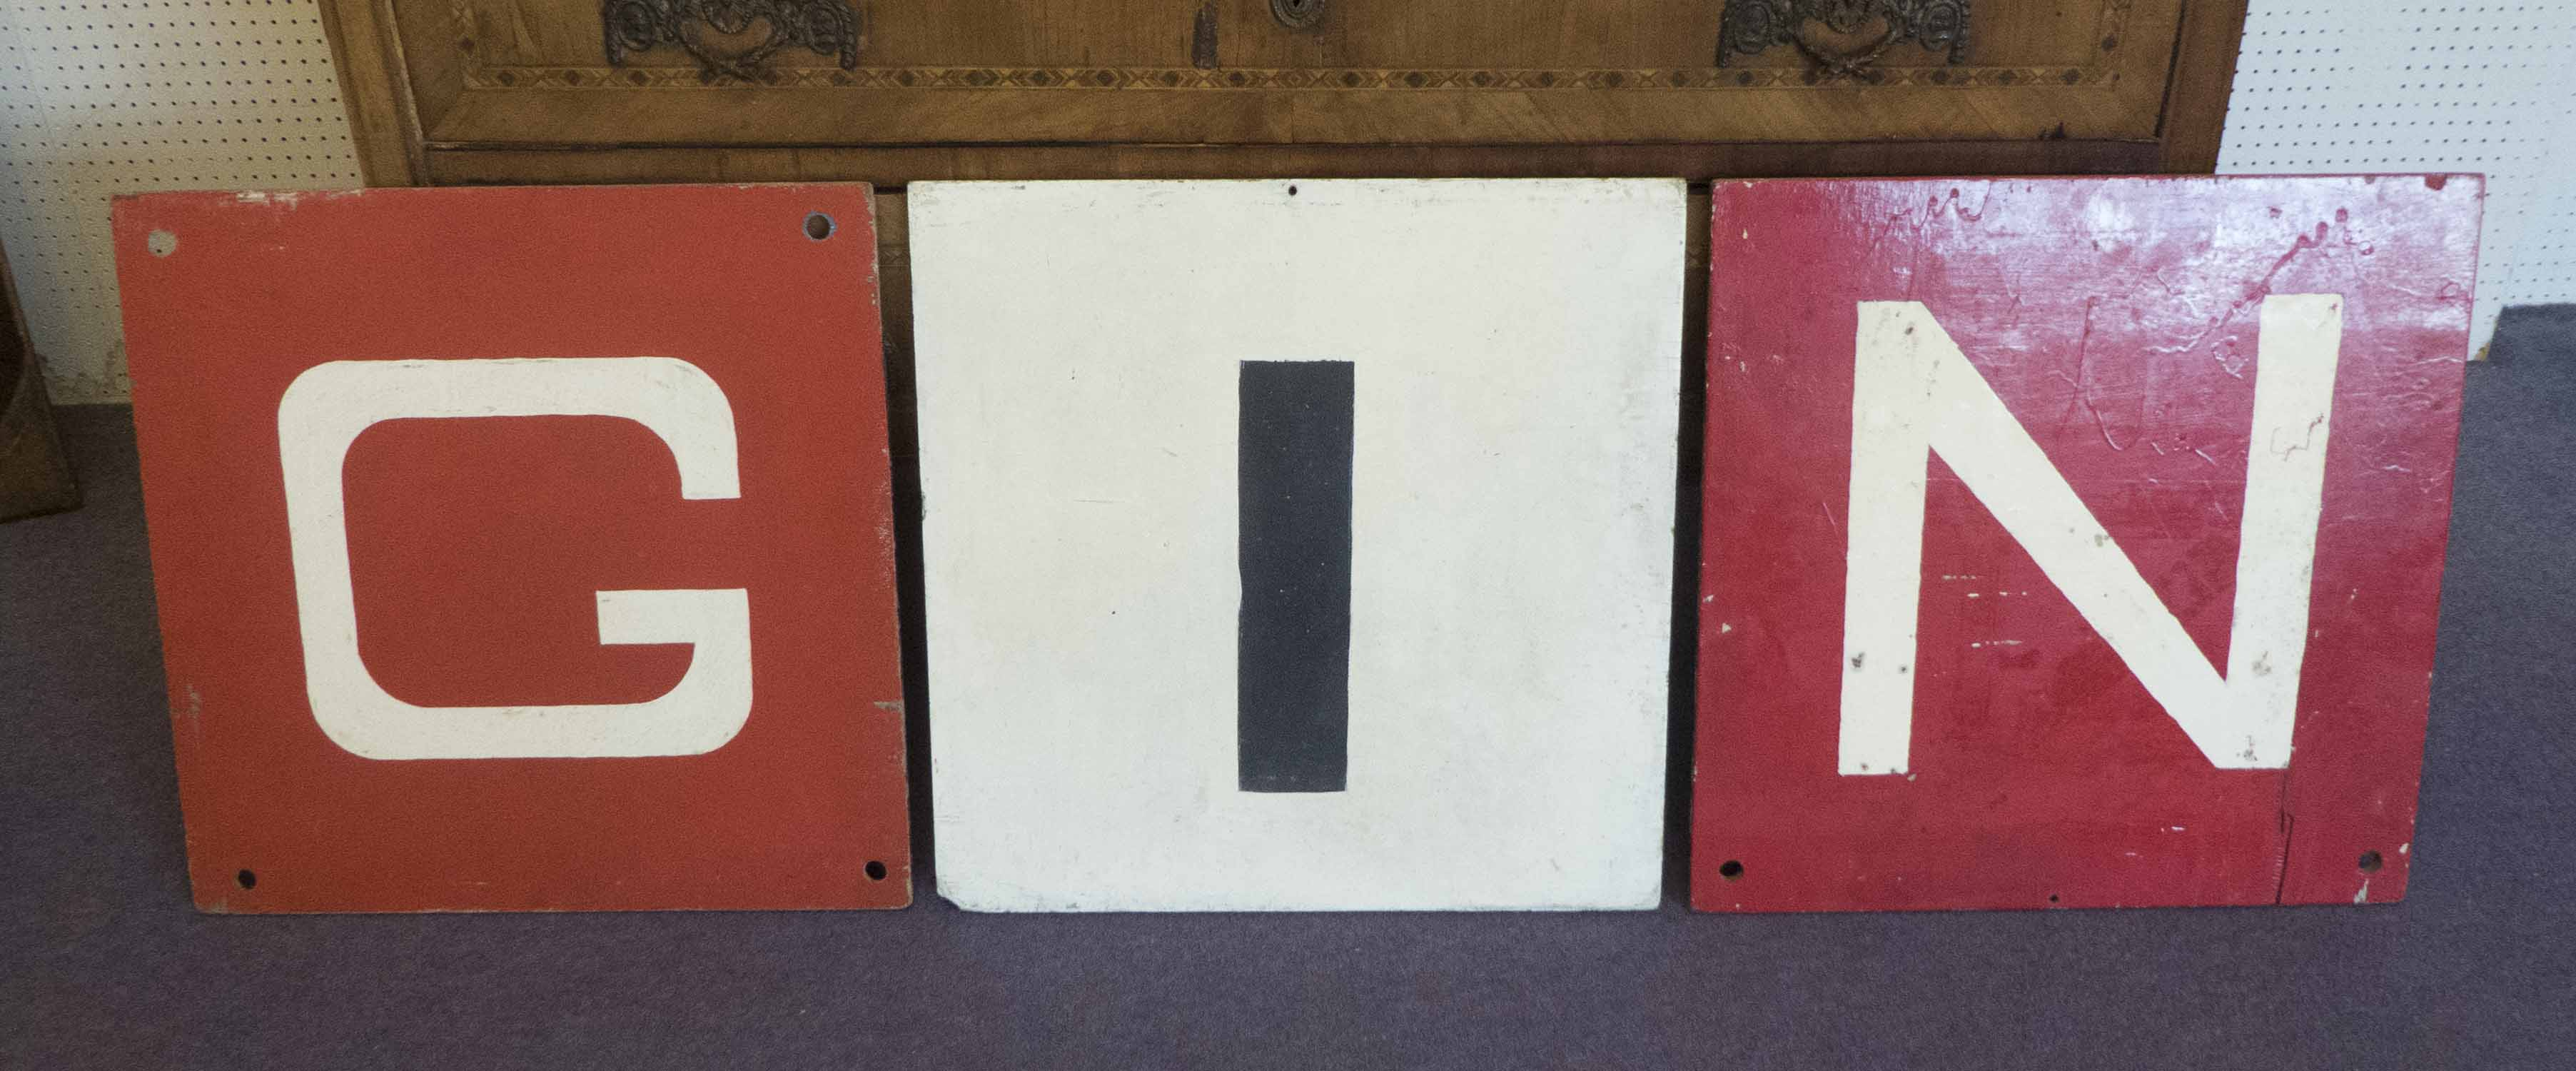 Lot 9 - MARINE MARKER CARDS, set of three, vintage 20th century, spelling 'Gin', painted plywood,